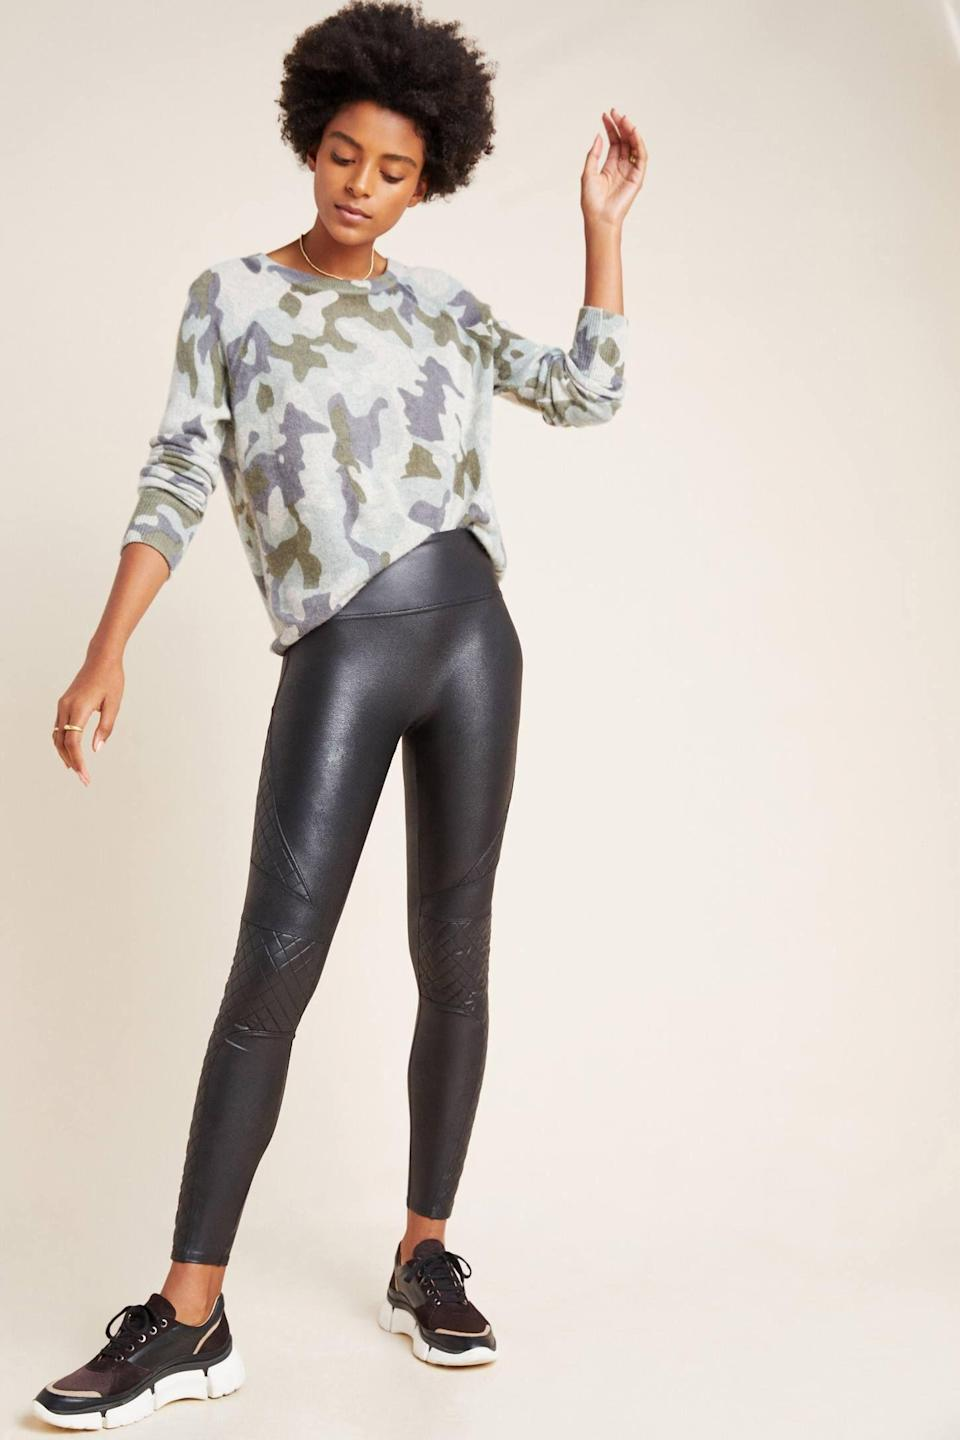 """<p><strong>Spanx</strong></p><p>anthropologie.com</p><p><strong>$110.00</strong></p><p><a href=""""https://go.redirectingat.com?id=74968X1596630&url=https%3A%2F%2Fwww.anthropologie.com%2Fshop%2Fspanx-quilted-faux-leather-leggings&sref=https%3A%2F%2Fwww.marieclaire.com%2Ffashion%2Fg34437532%2Fbest-leather-leggings%2F"""" rel=""""nofollow noopener"""" target=""""_blank"""" data-ylk=""""slk:SHOP IT"""" class=""""link rapid-noclick-resp"""">SHOP IT</a></p><p>A little design goes a long way when it comes to plain black leggings. Here, the quilted pattern around the knees makes the leggings a fit for both casual and slightly dressier looks when paired with a leather jacket, cute top, and heel boots.</p>"""